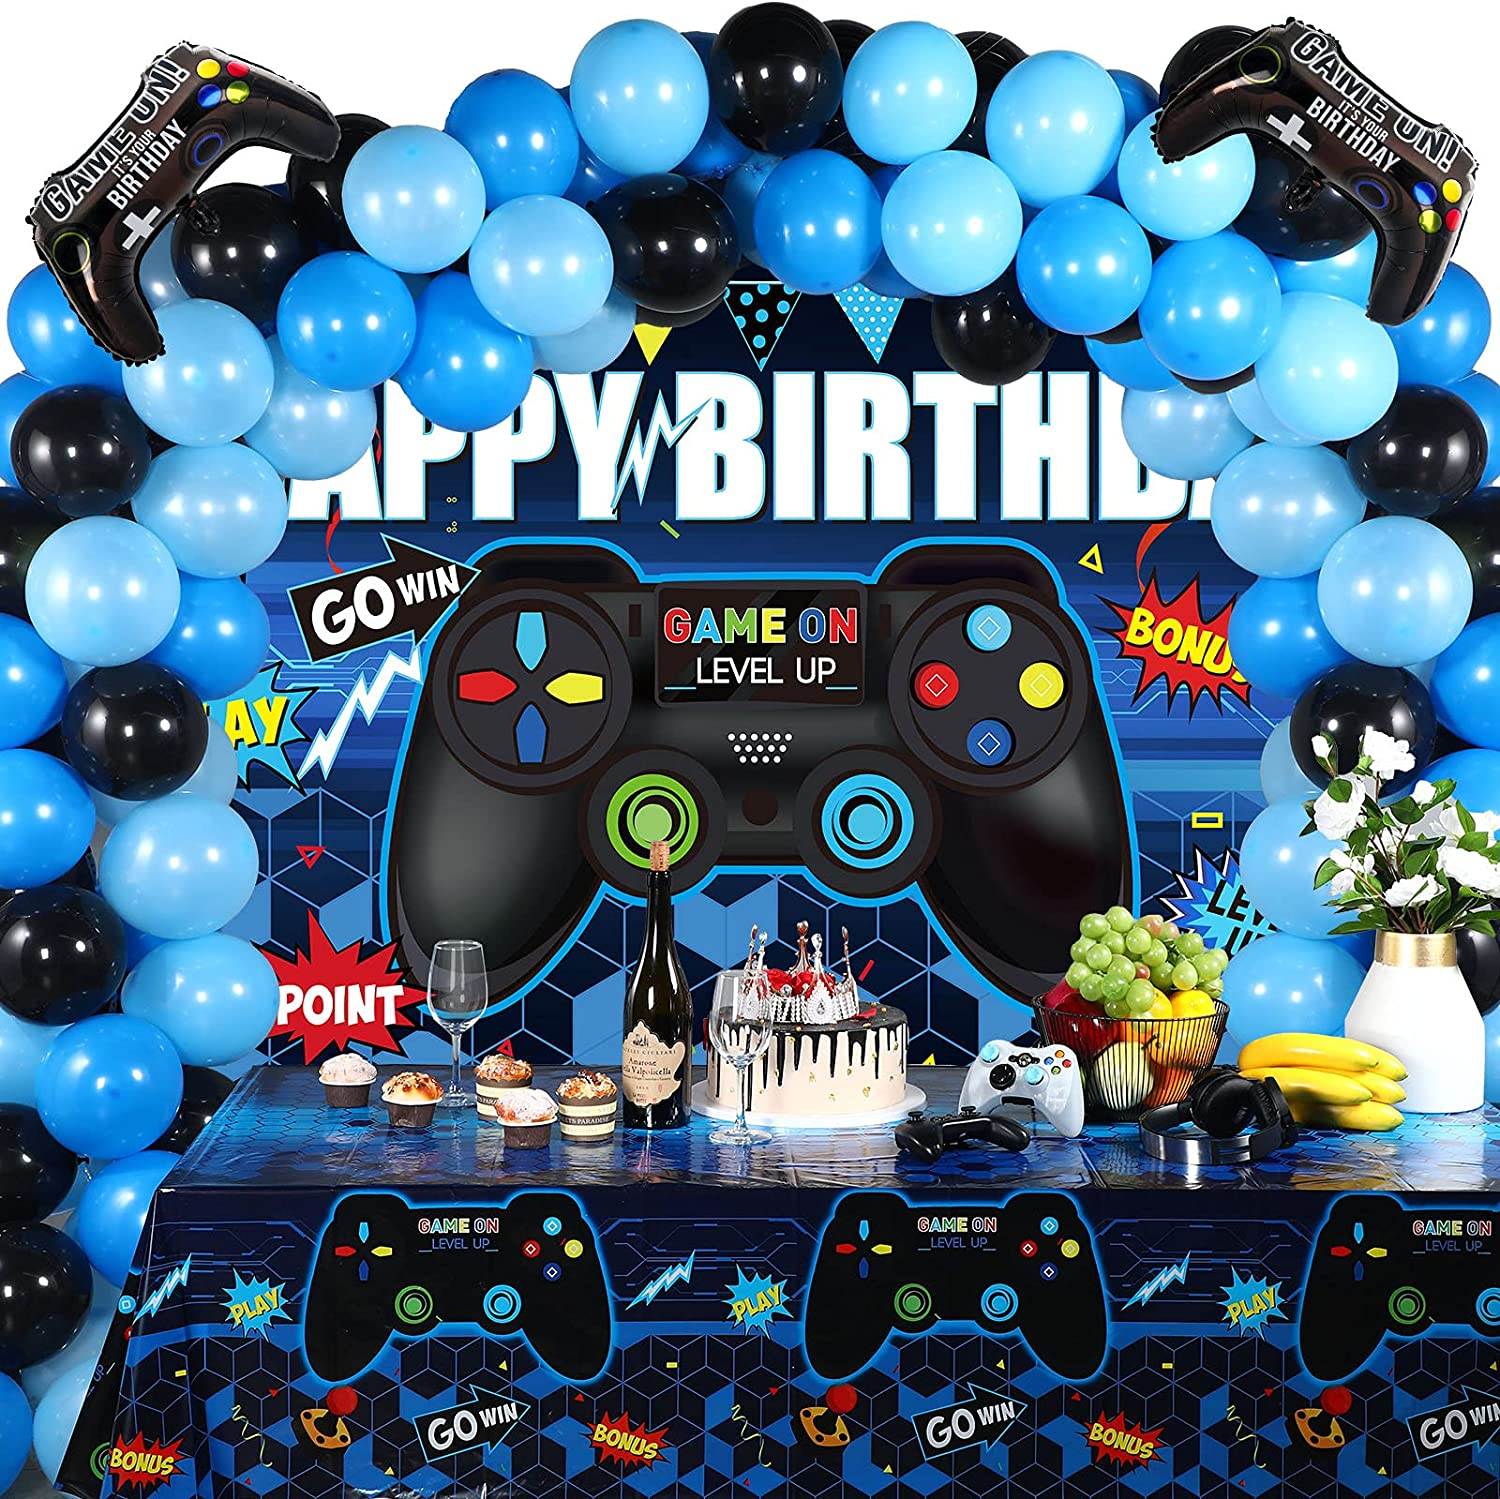 Video Game Birthday Party Decorations Set Gaming Happy Birthday Supplies Includes Video Game Backdrop, Table Covers, Multi-Color Balloons and Foil Gamer Balloons for Birthday Party (Blue and Black)